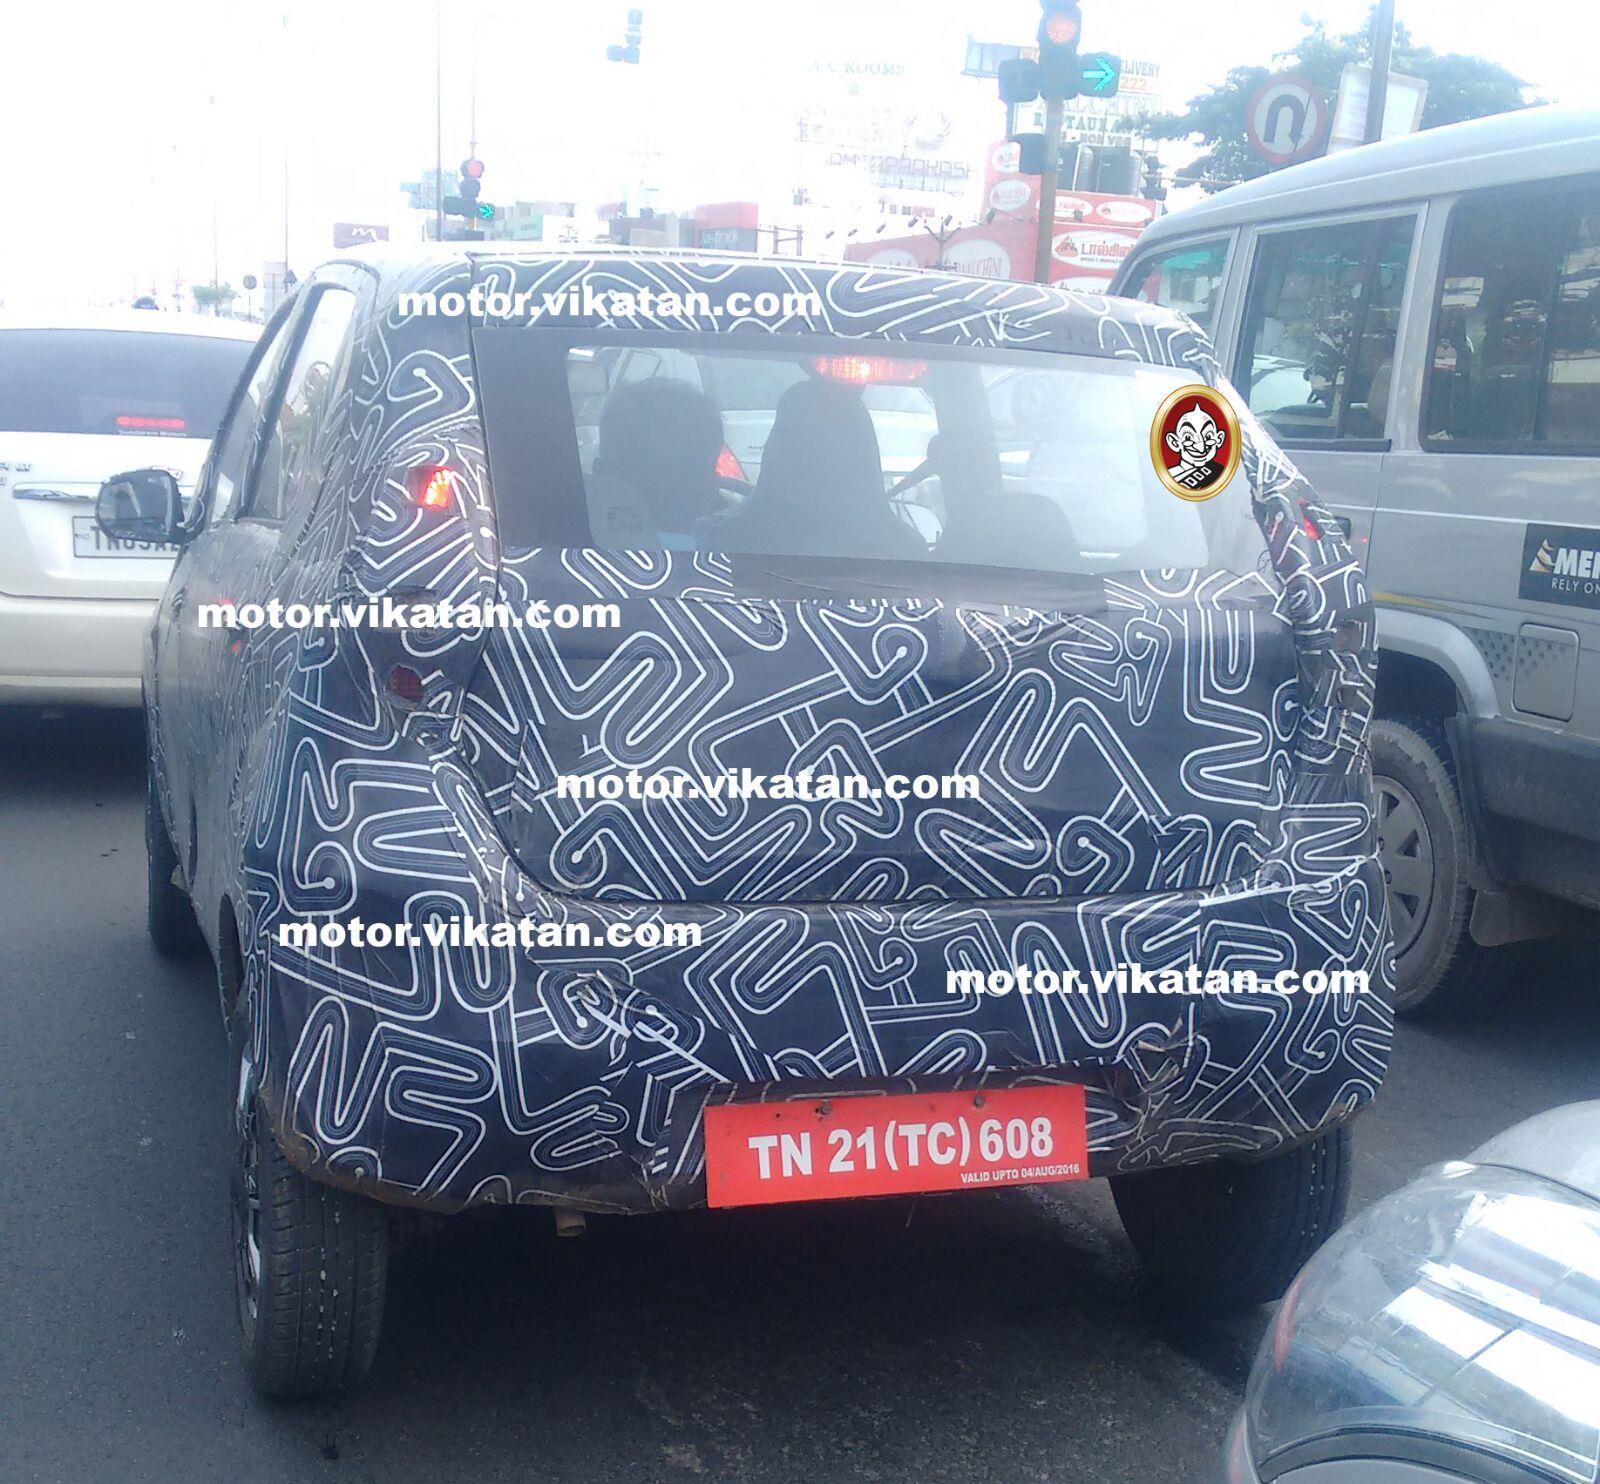 Datsun Redigo production version spied